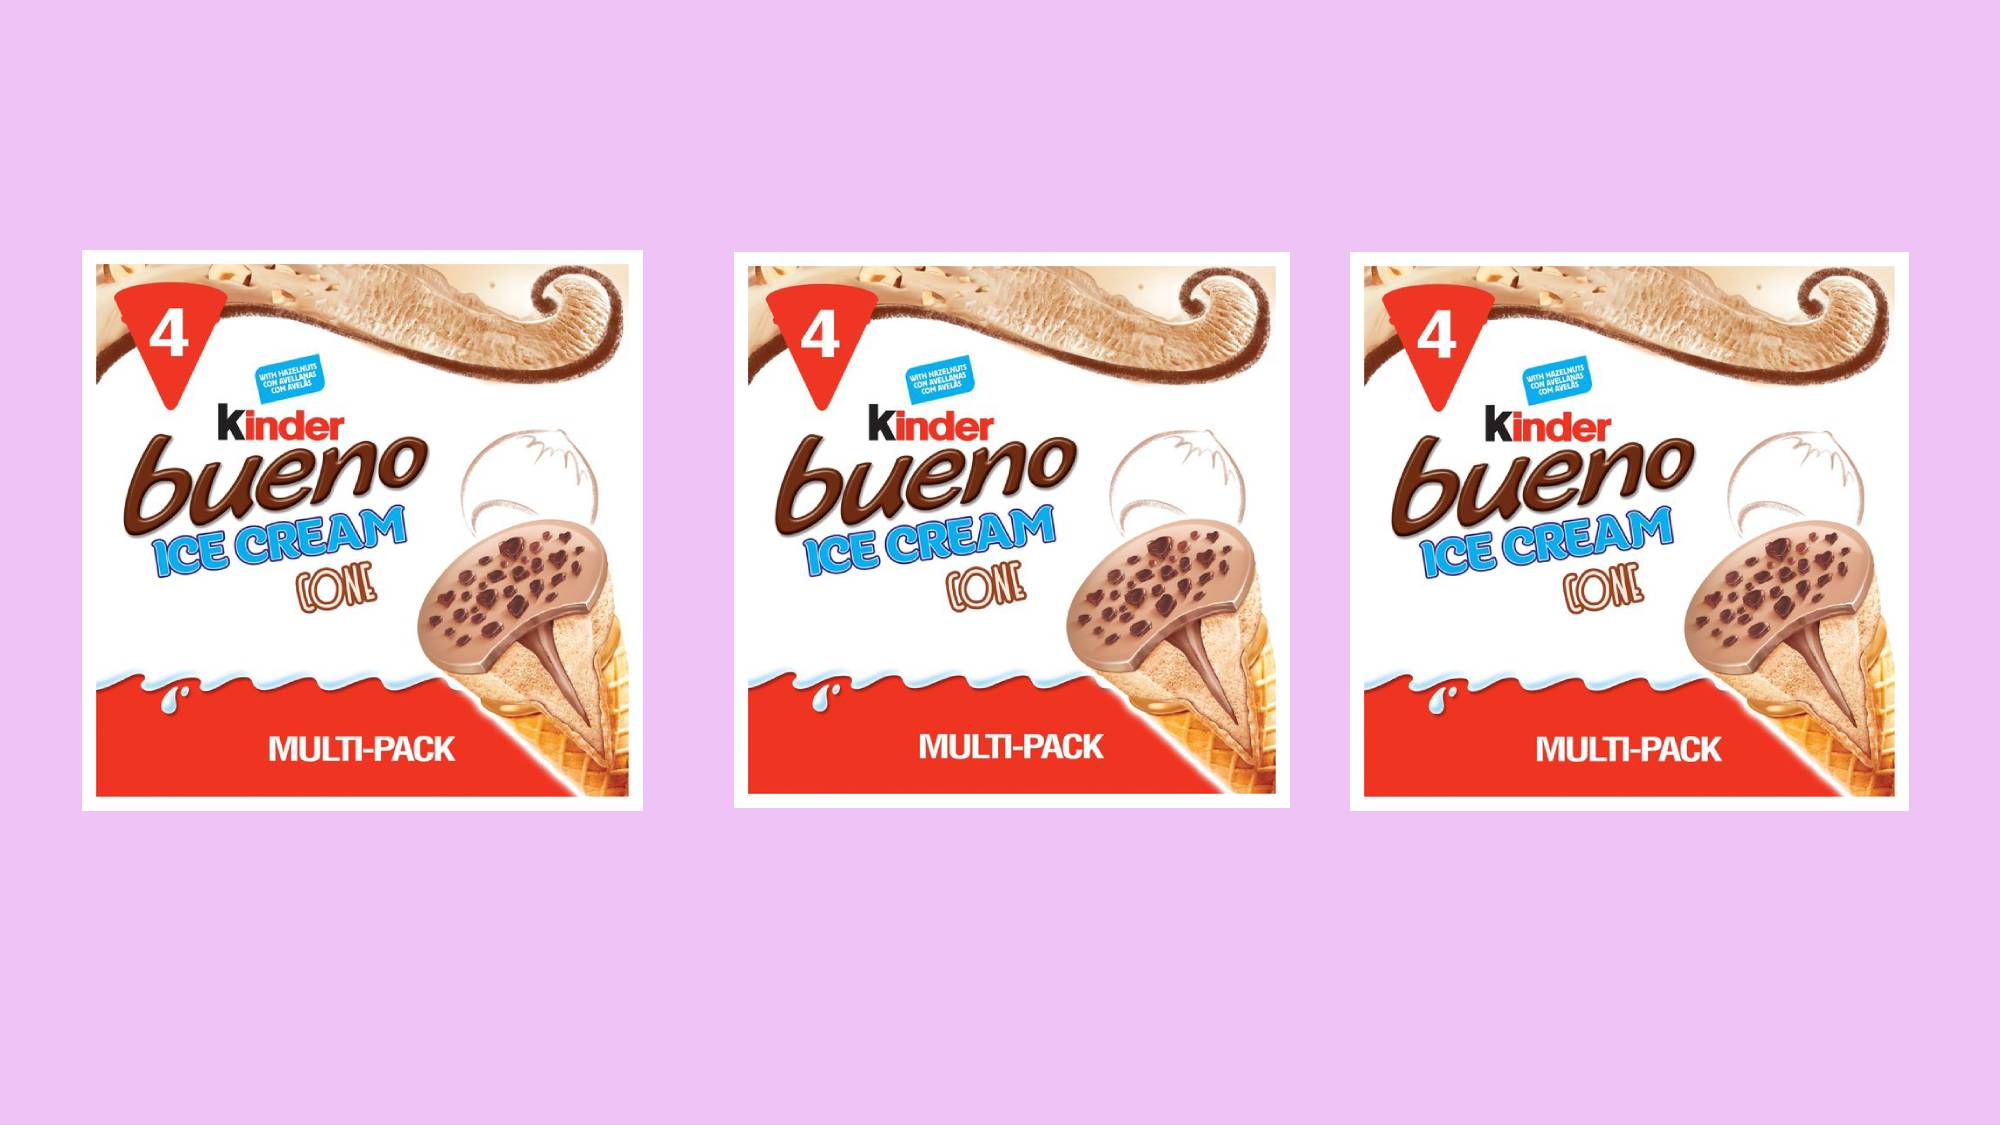 Kinder Bueno ice creams have landed in the UK